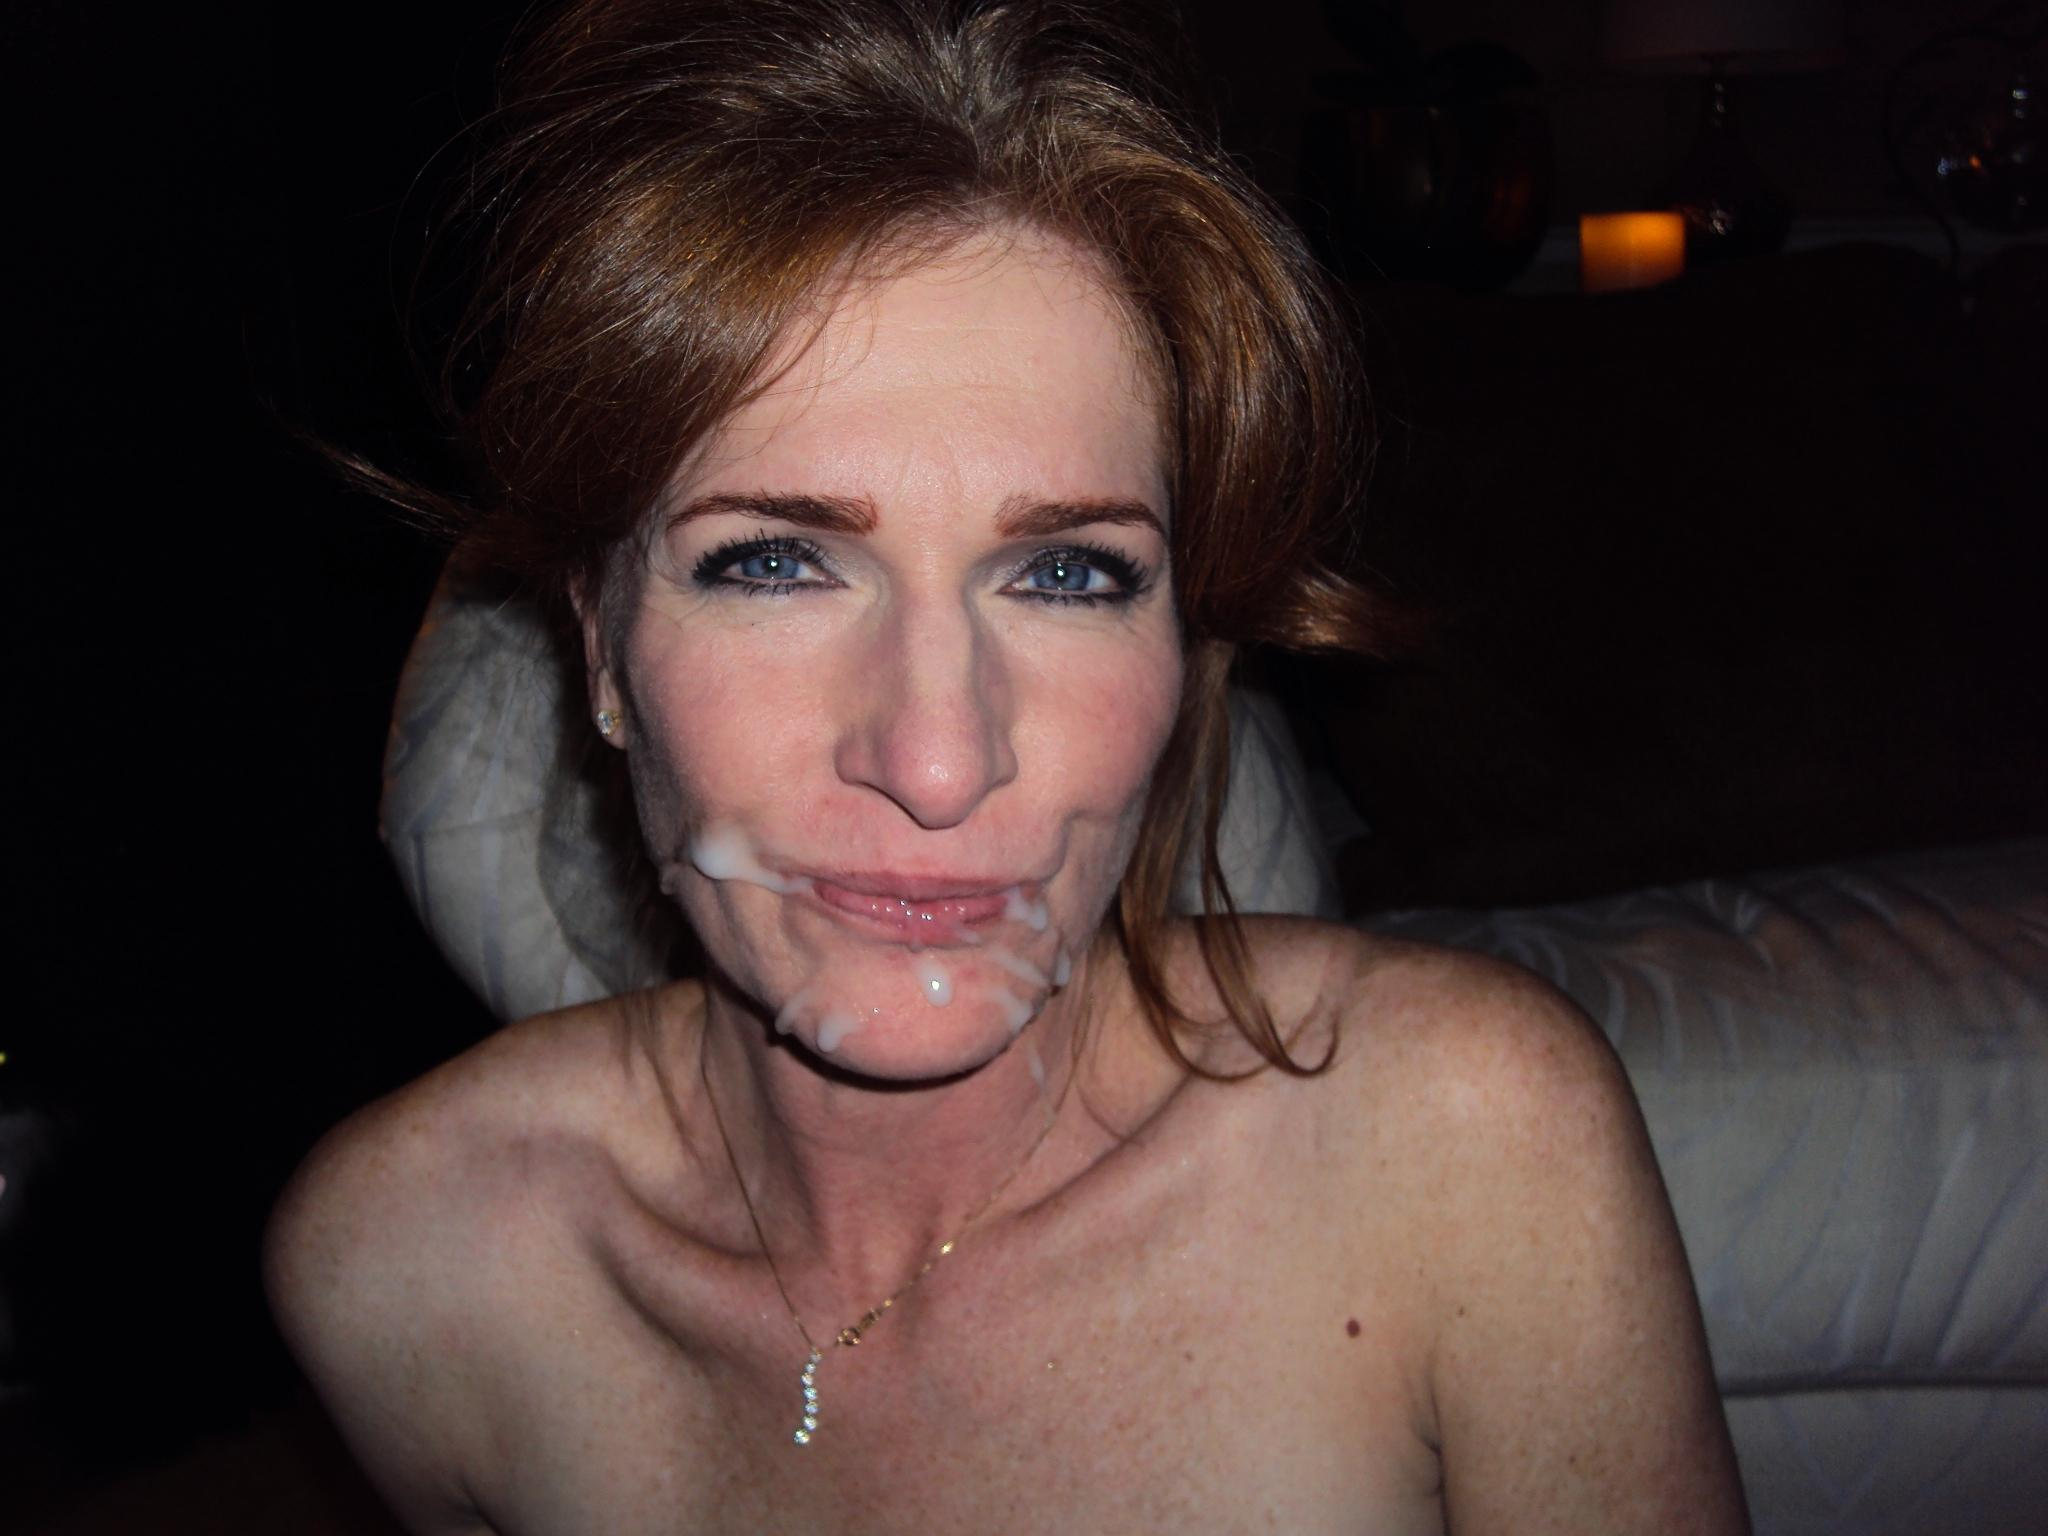 Redhead housewife drips jizz from her mouth after a hard homemade fuck. Hot amateur MILF licks the cum from her lips after a blowjob